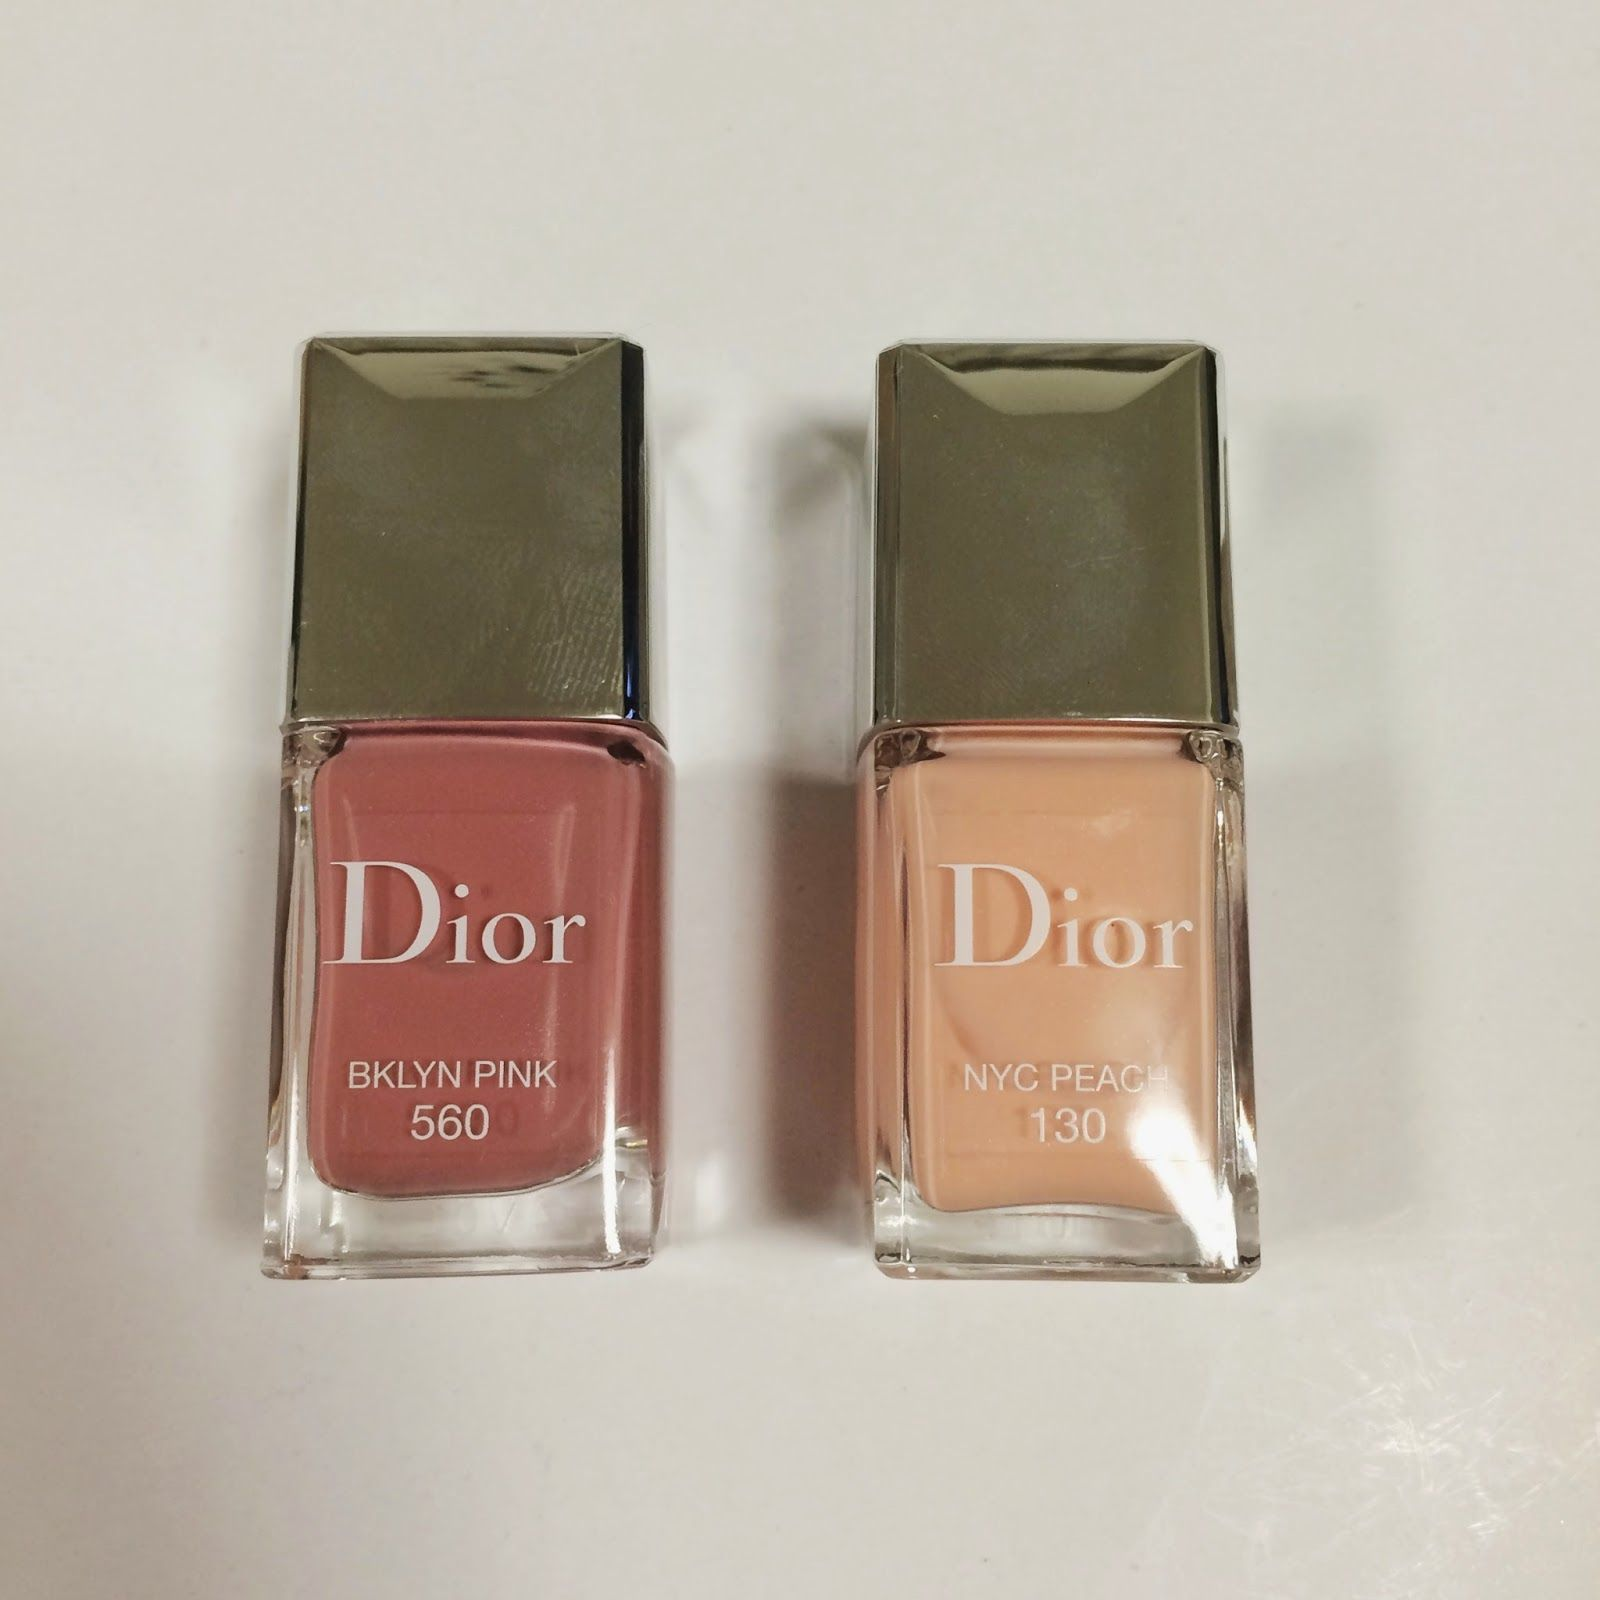 Dior cruise makeup collection 2015: #560 Bklyn Pink #130 Nyc Peach ...